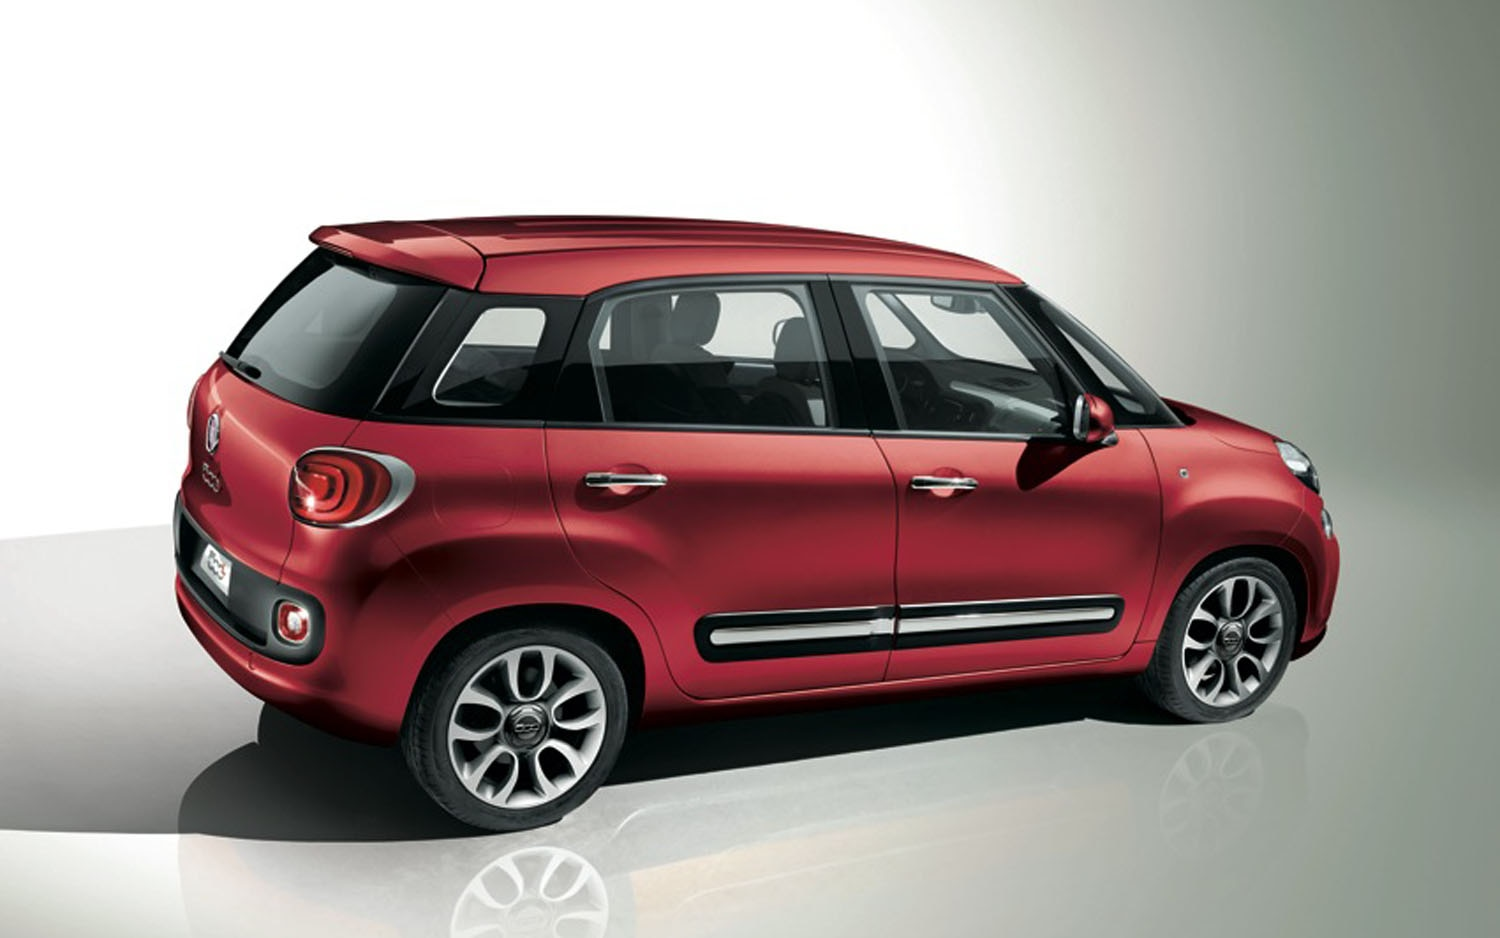 2013 Fiat 500L Rear Three Quarter1